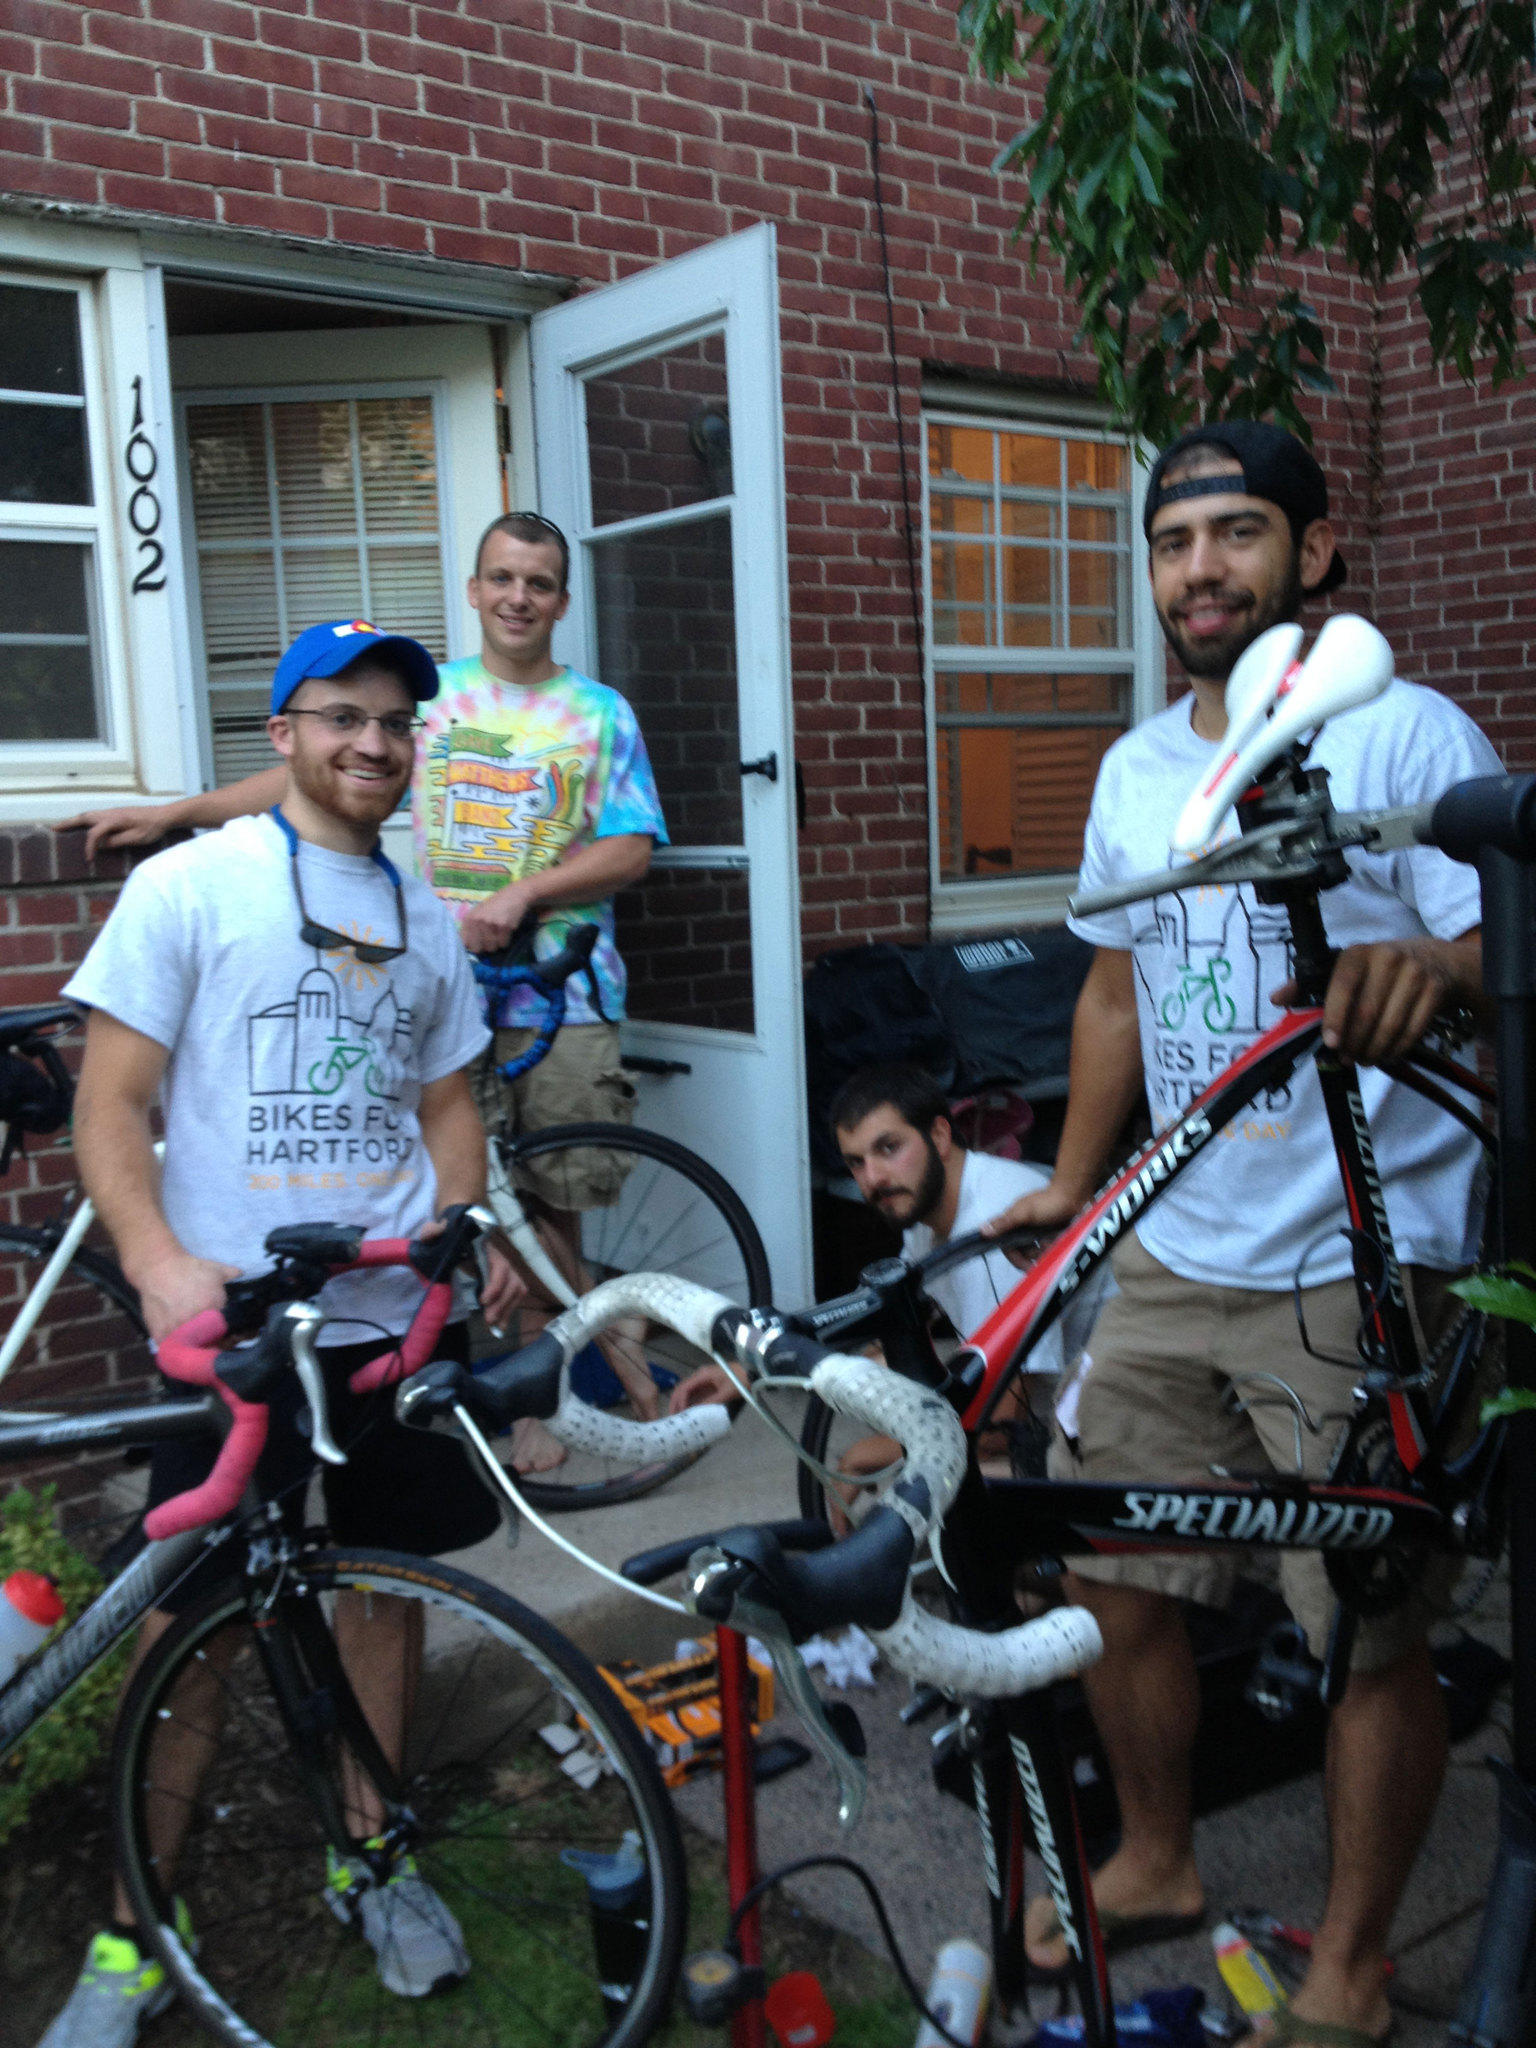 From left, Tim Scully of Unionville, Patrick Scully of Unionville, Nick Fitzner of Glastonbury, Chris Rago of West Hartford. Tim, Patrick and Chris will be biking 200 miles from Provincetown to Hartford on Sunday to raise money for Bikes for Hartford. Nick will be providing support on the trip. Another cyclist, Andy Meigs, will be biking, too. LORI RILEY / HARTFORD COURANT